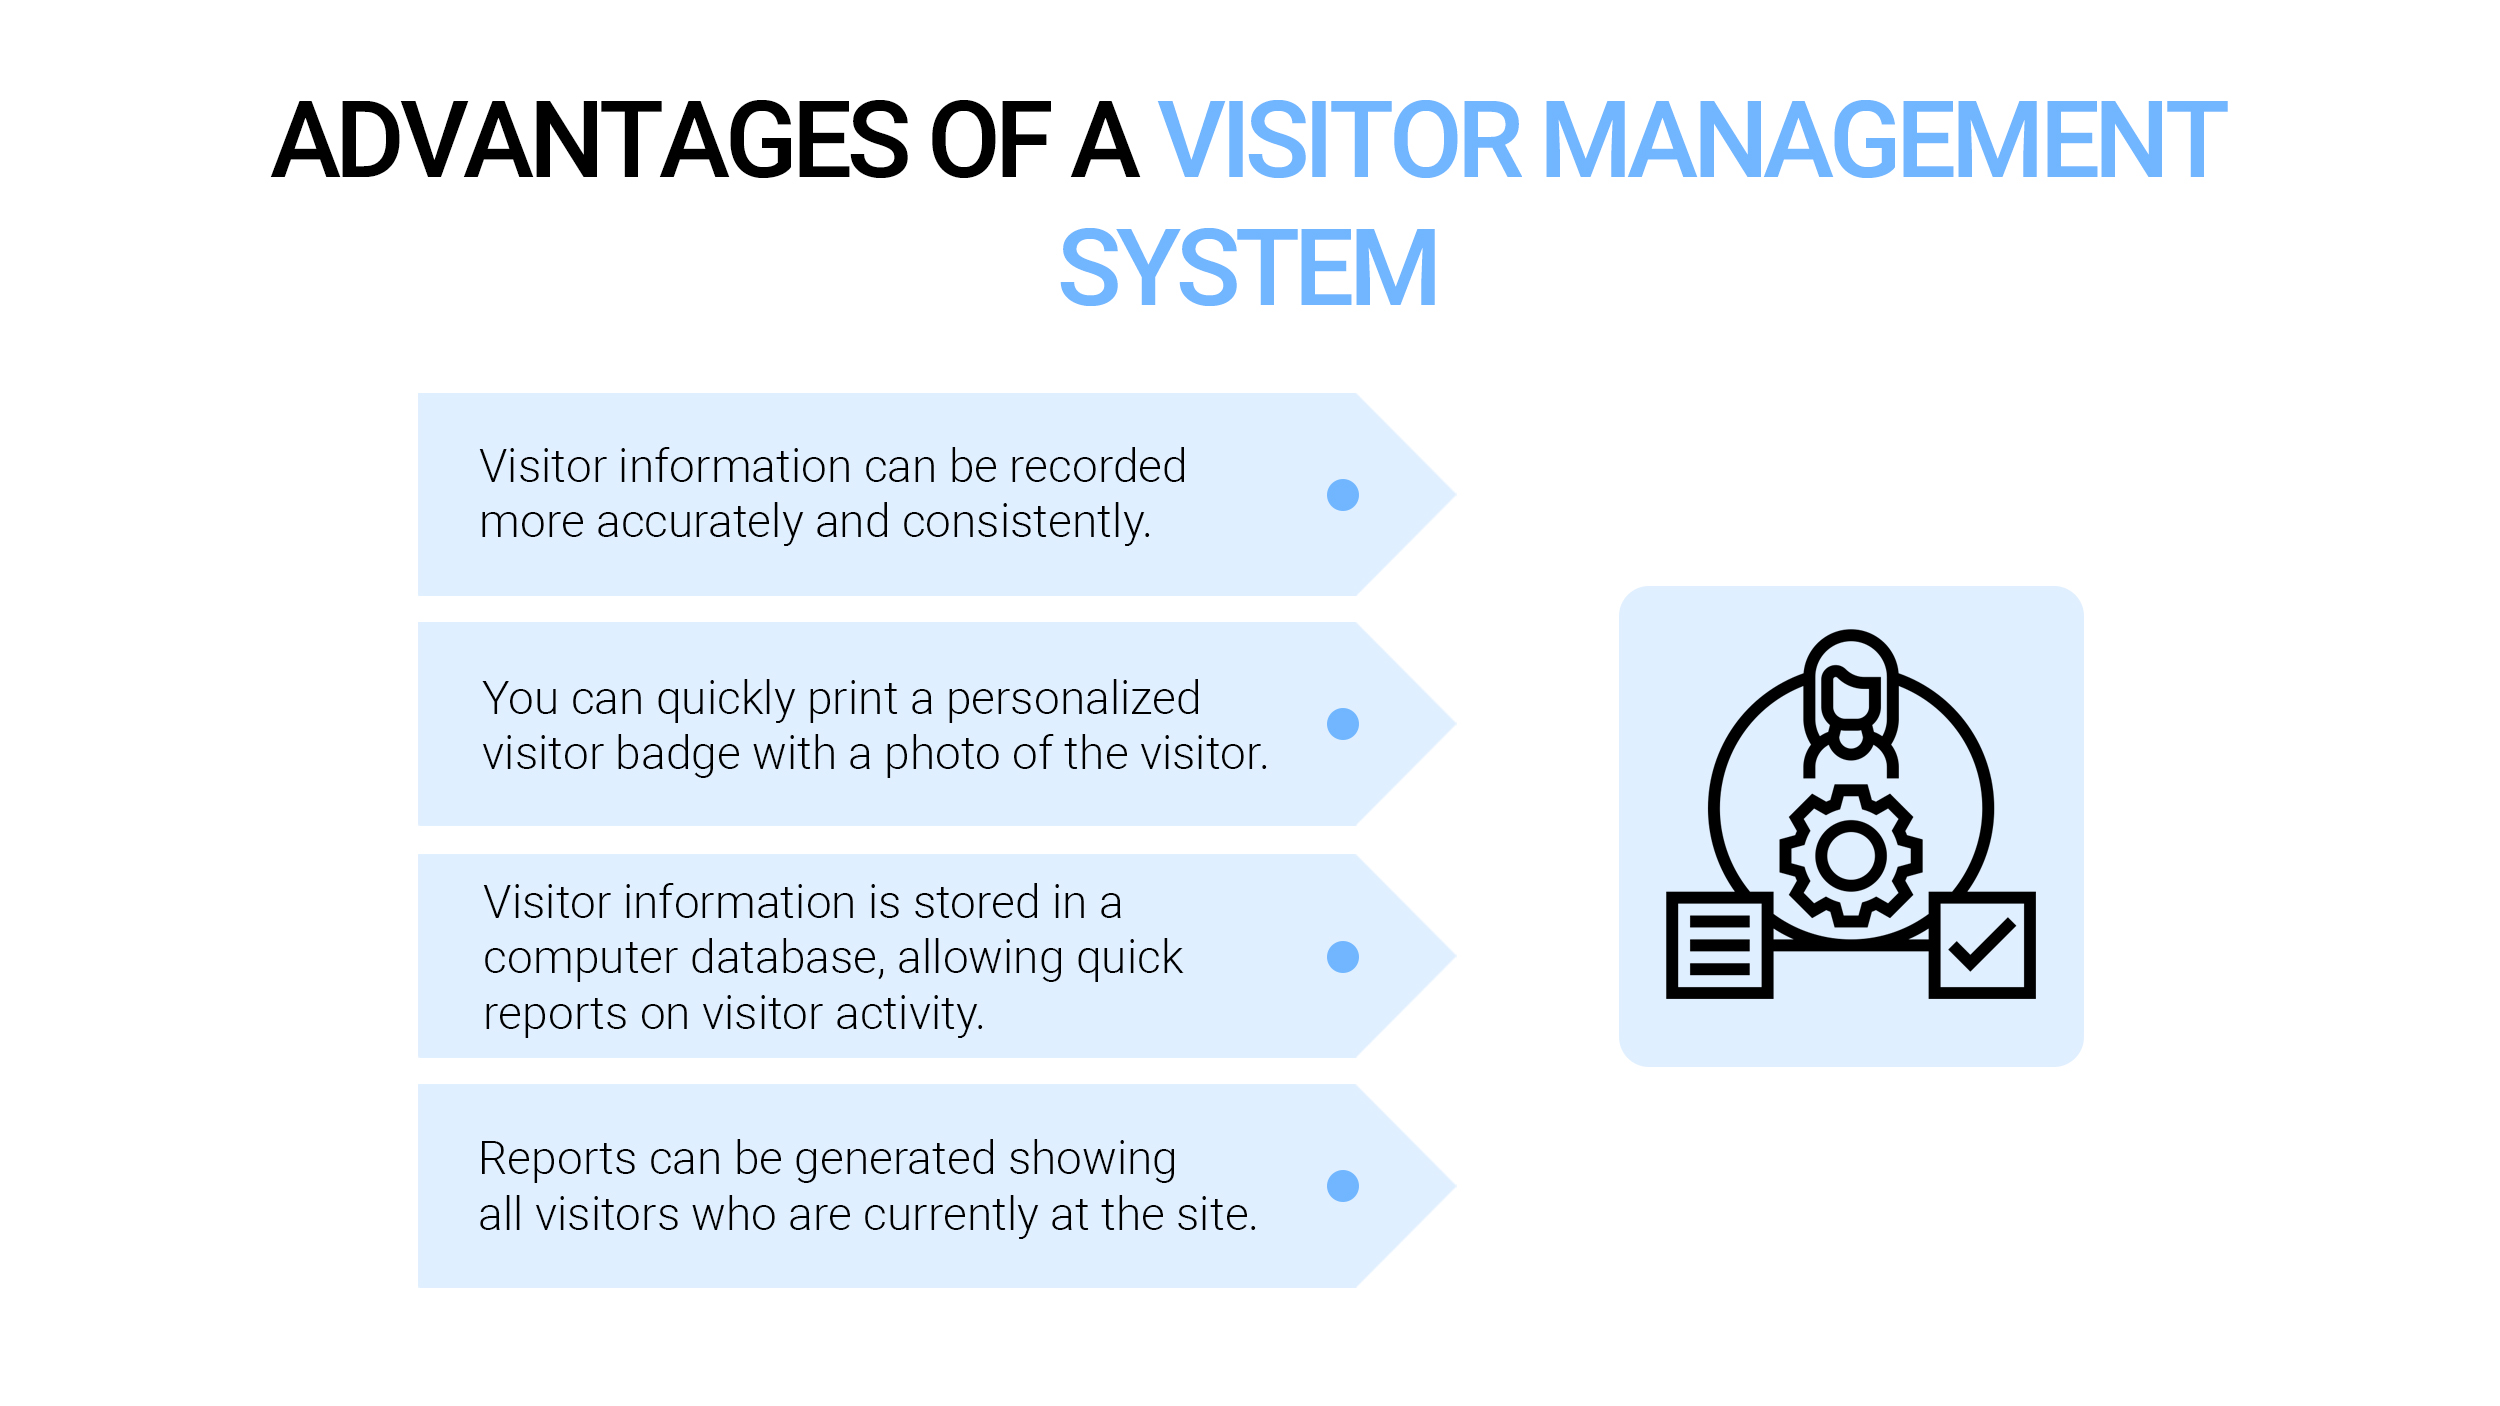 Advantages of a visitor management system